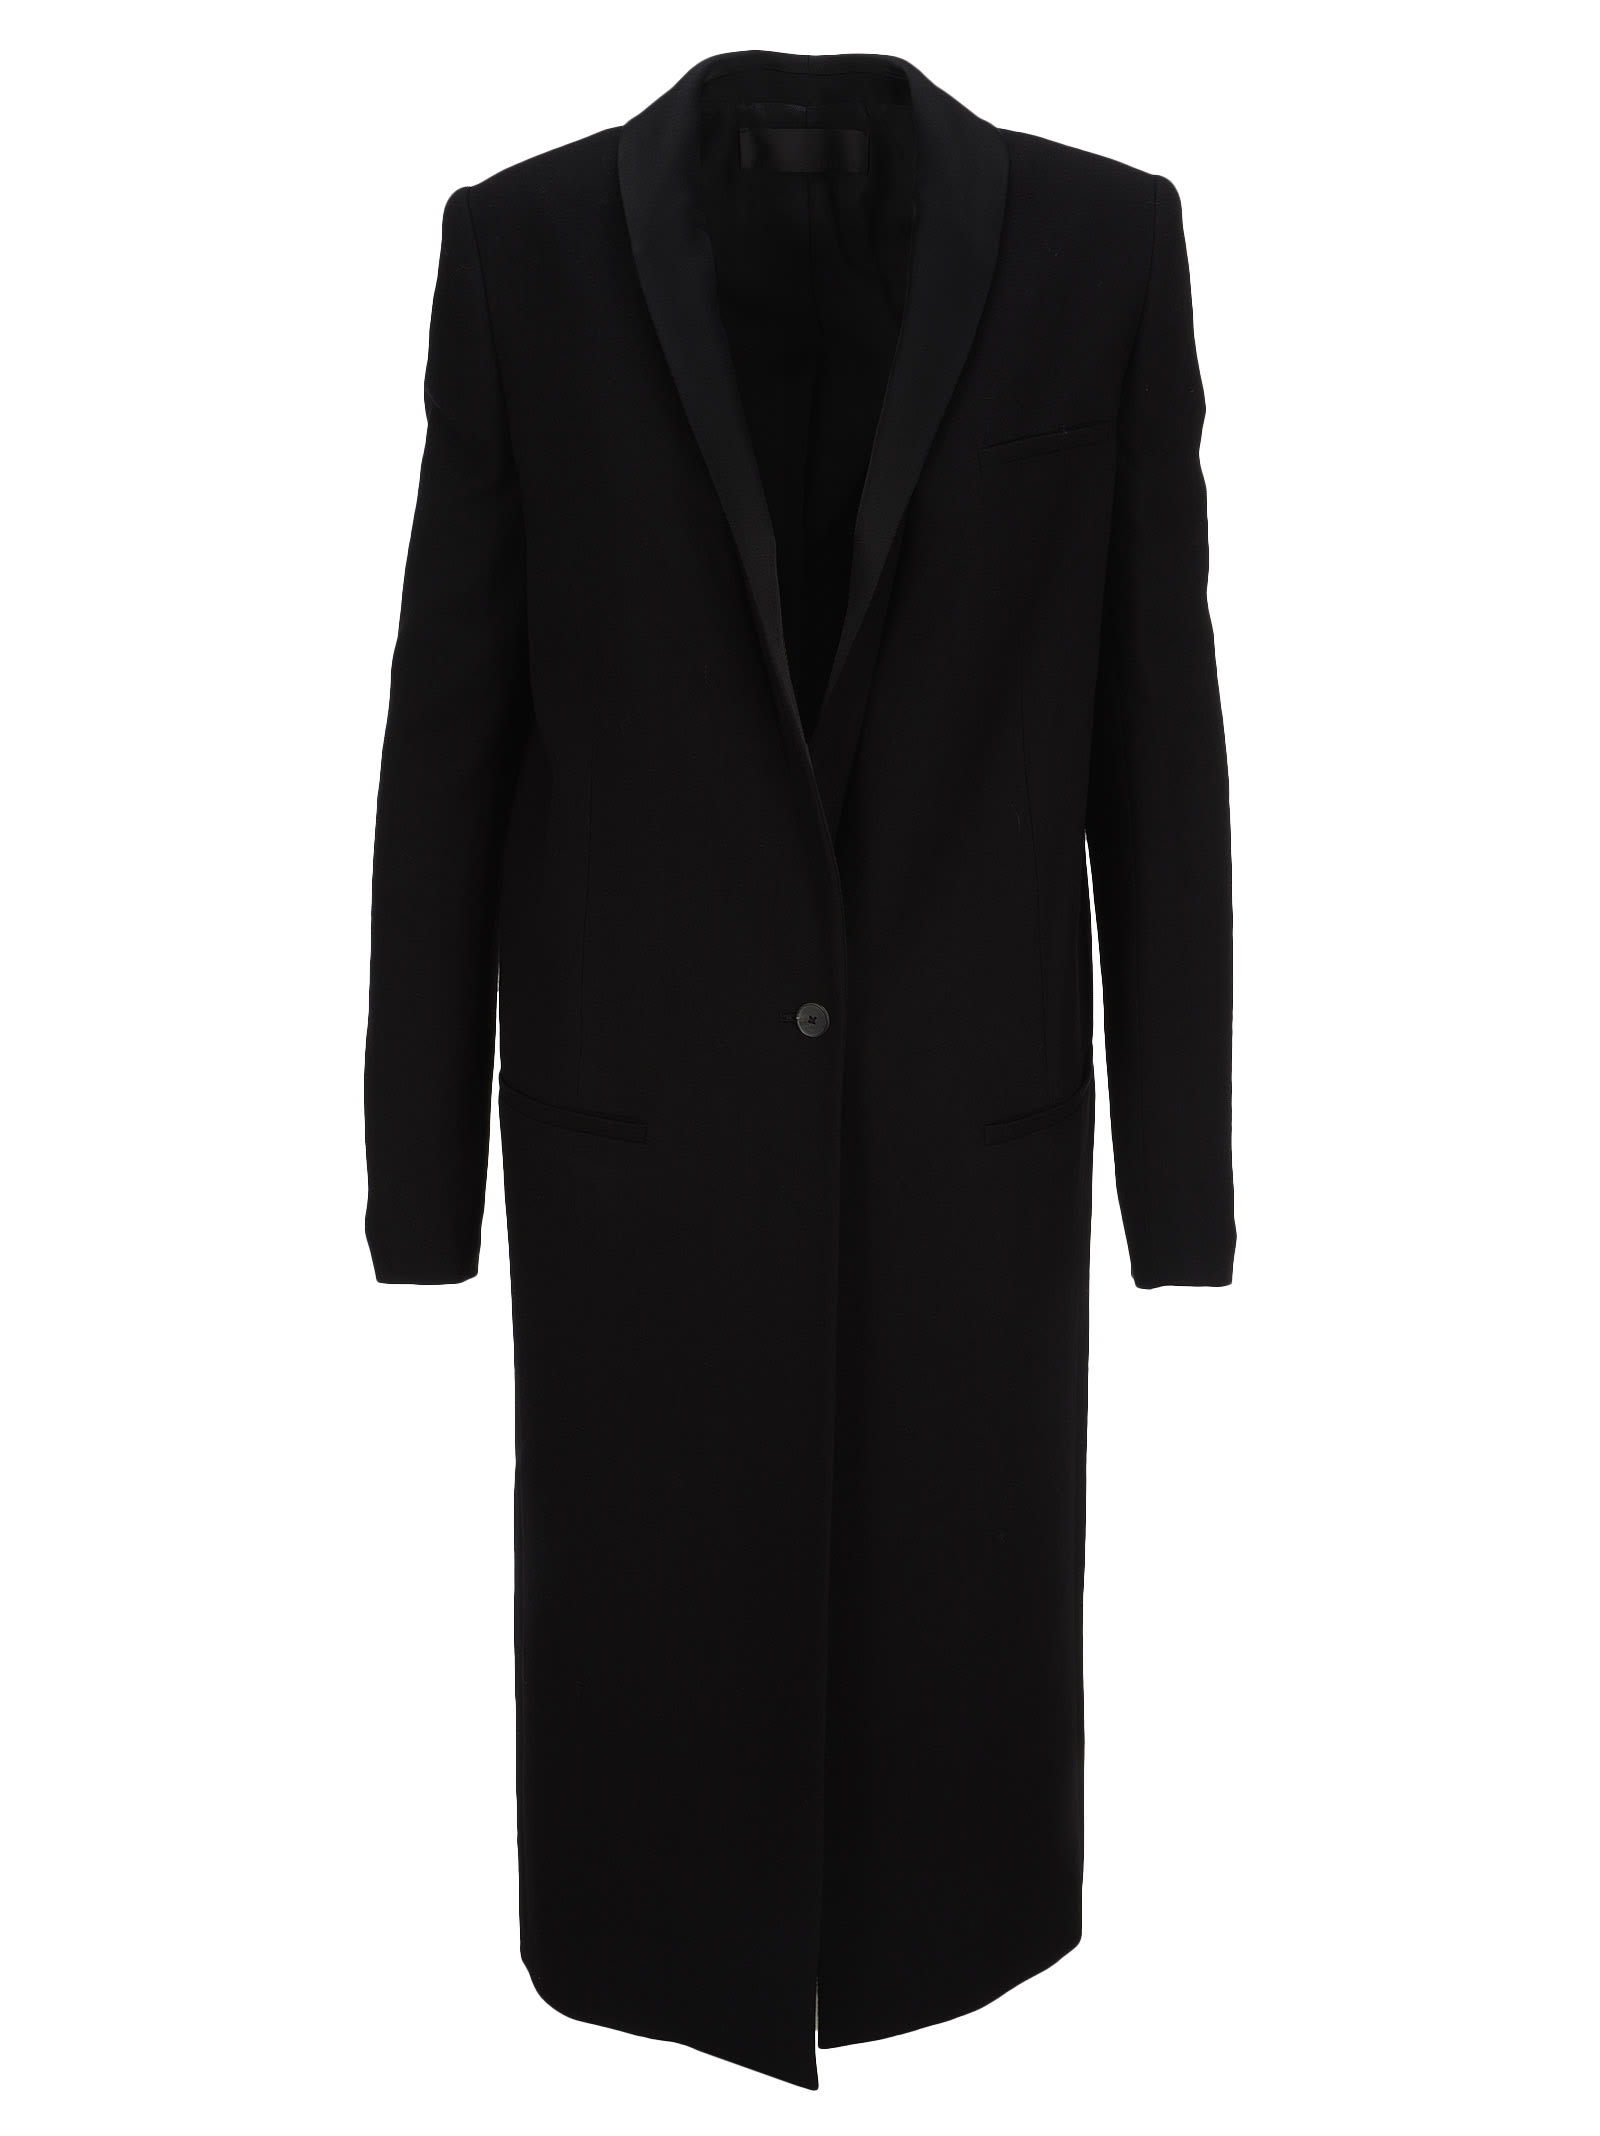 Haider Ackermann SINGLE BREASTED TUXEDO COAT